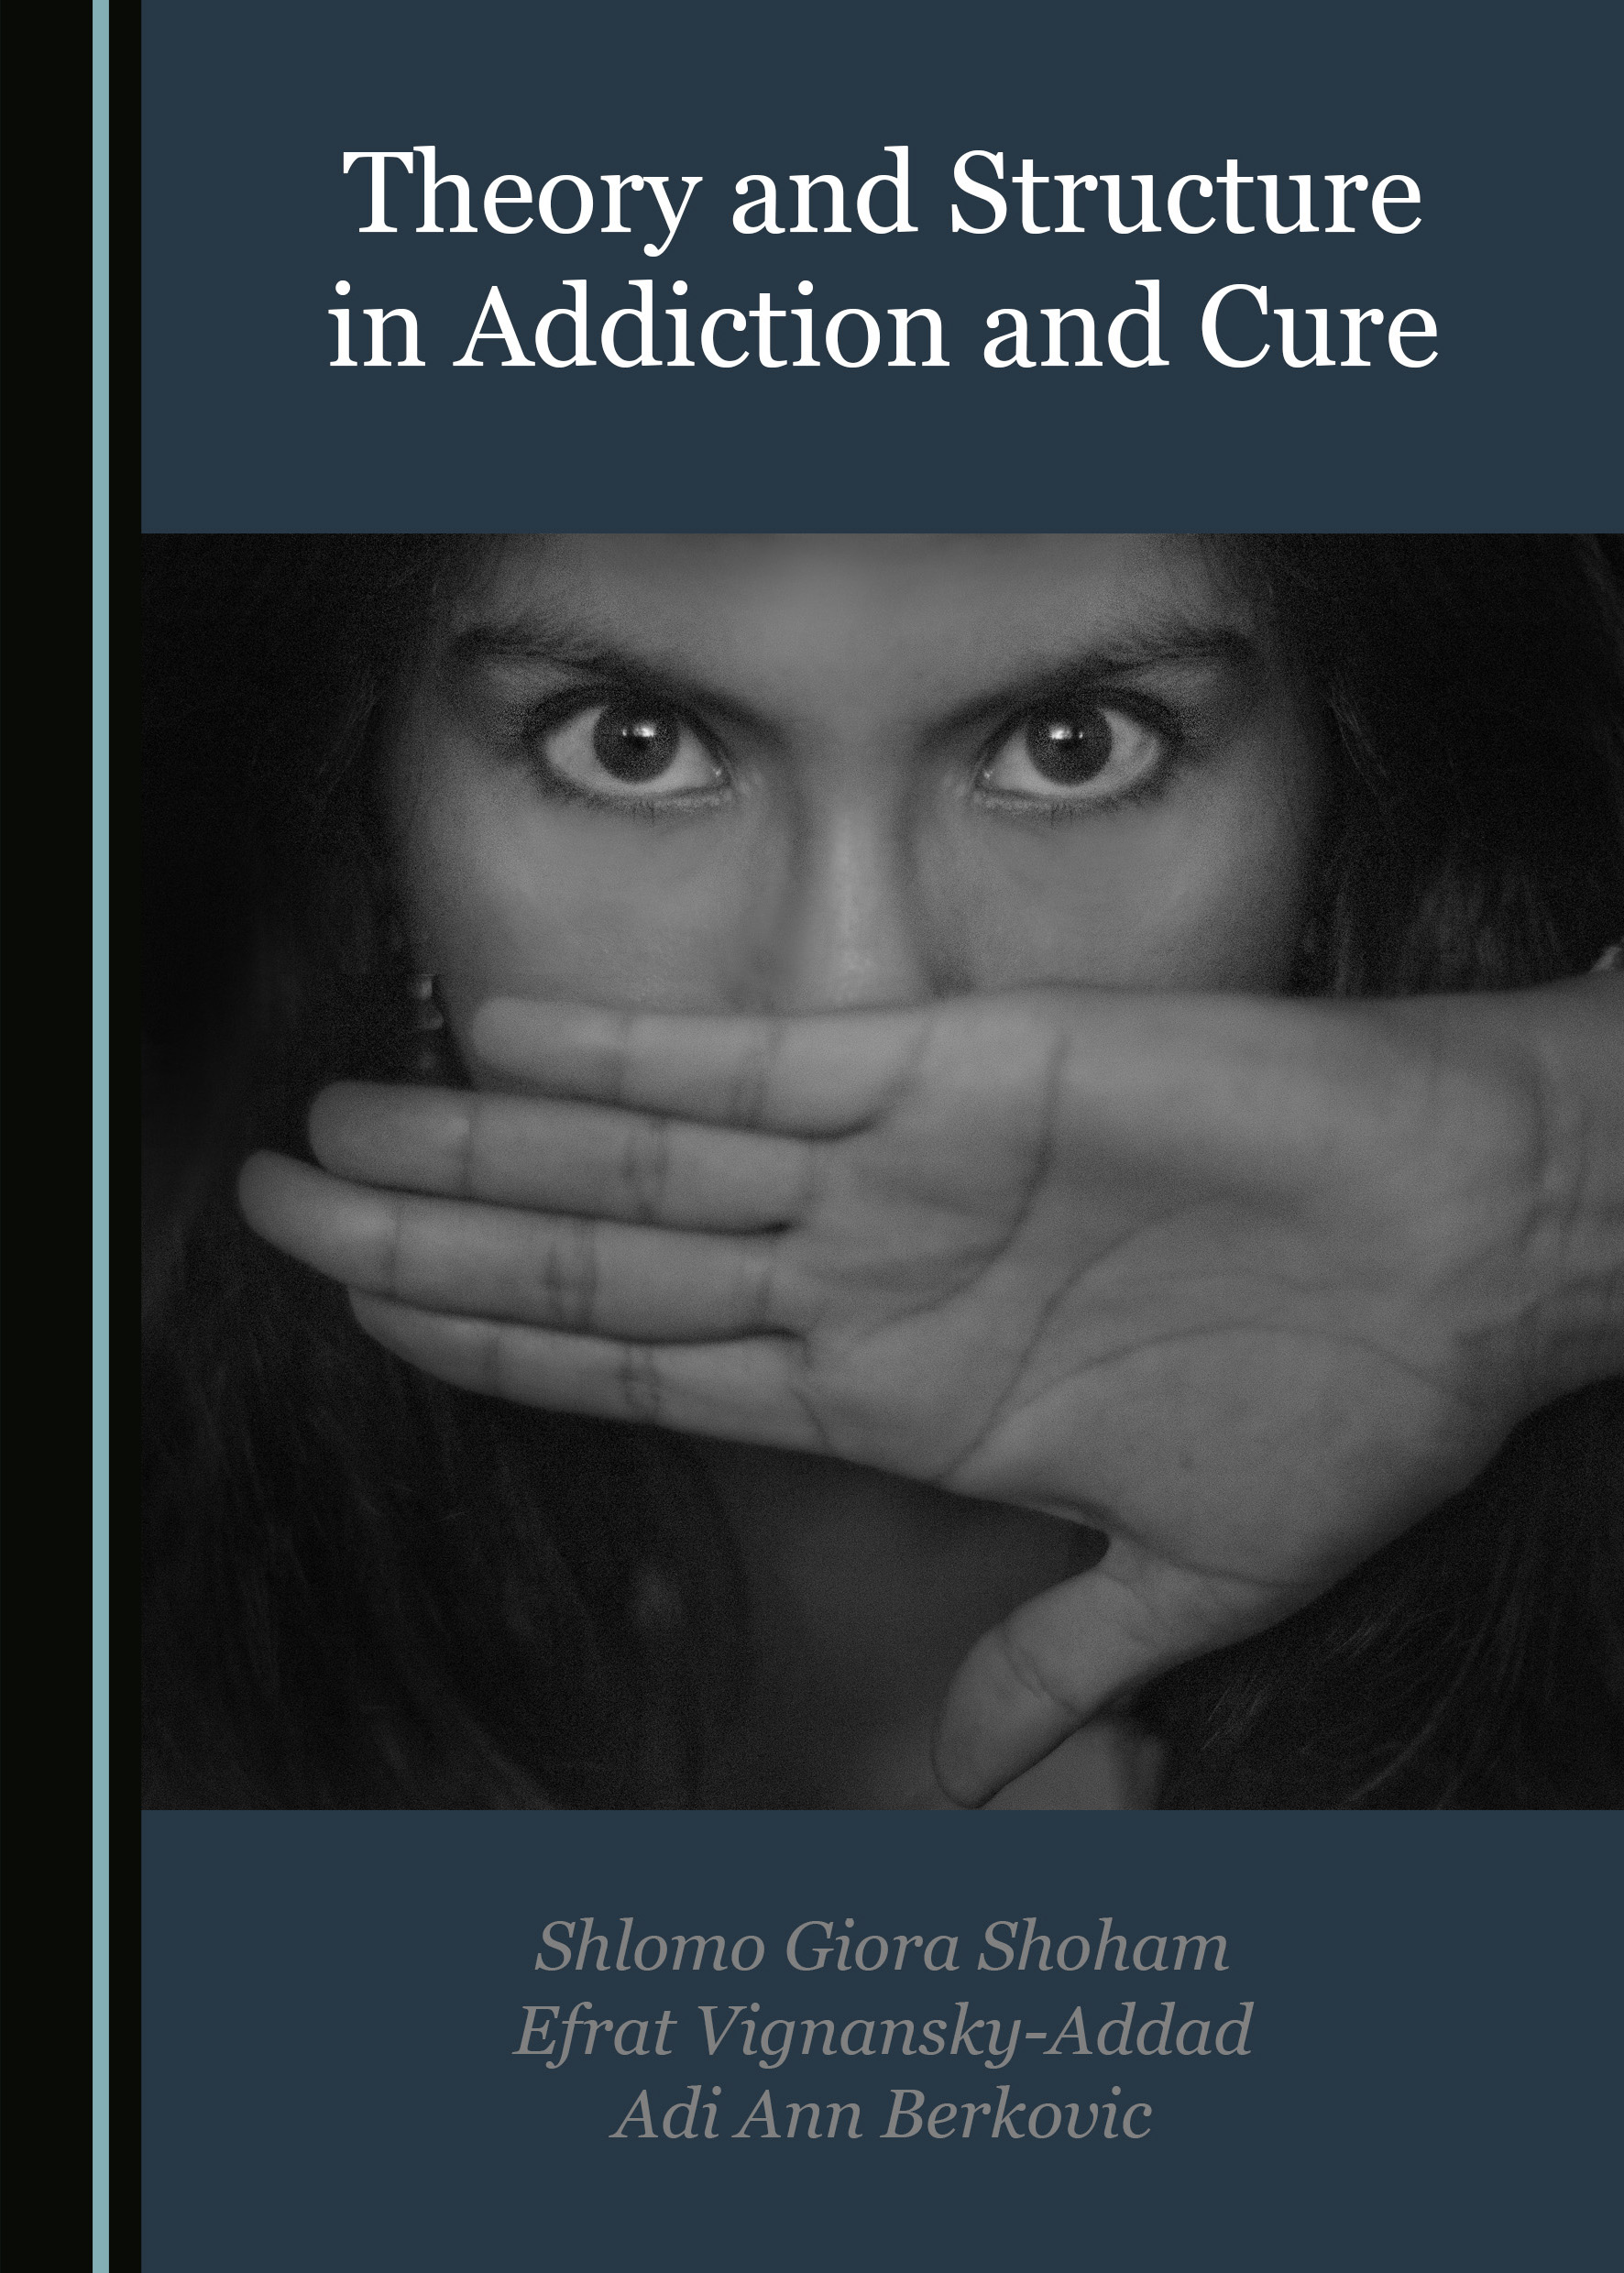 Theory and Structure in Addiction and Cure